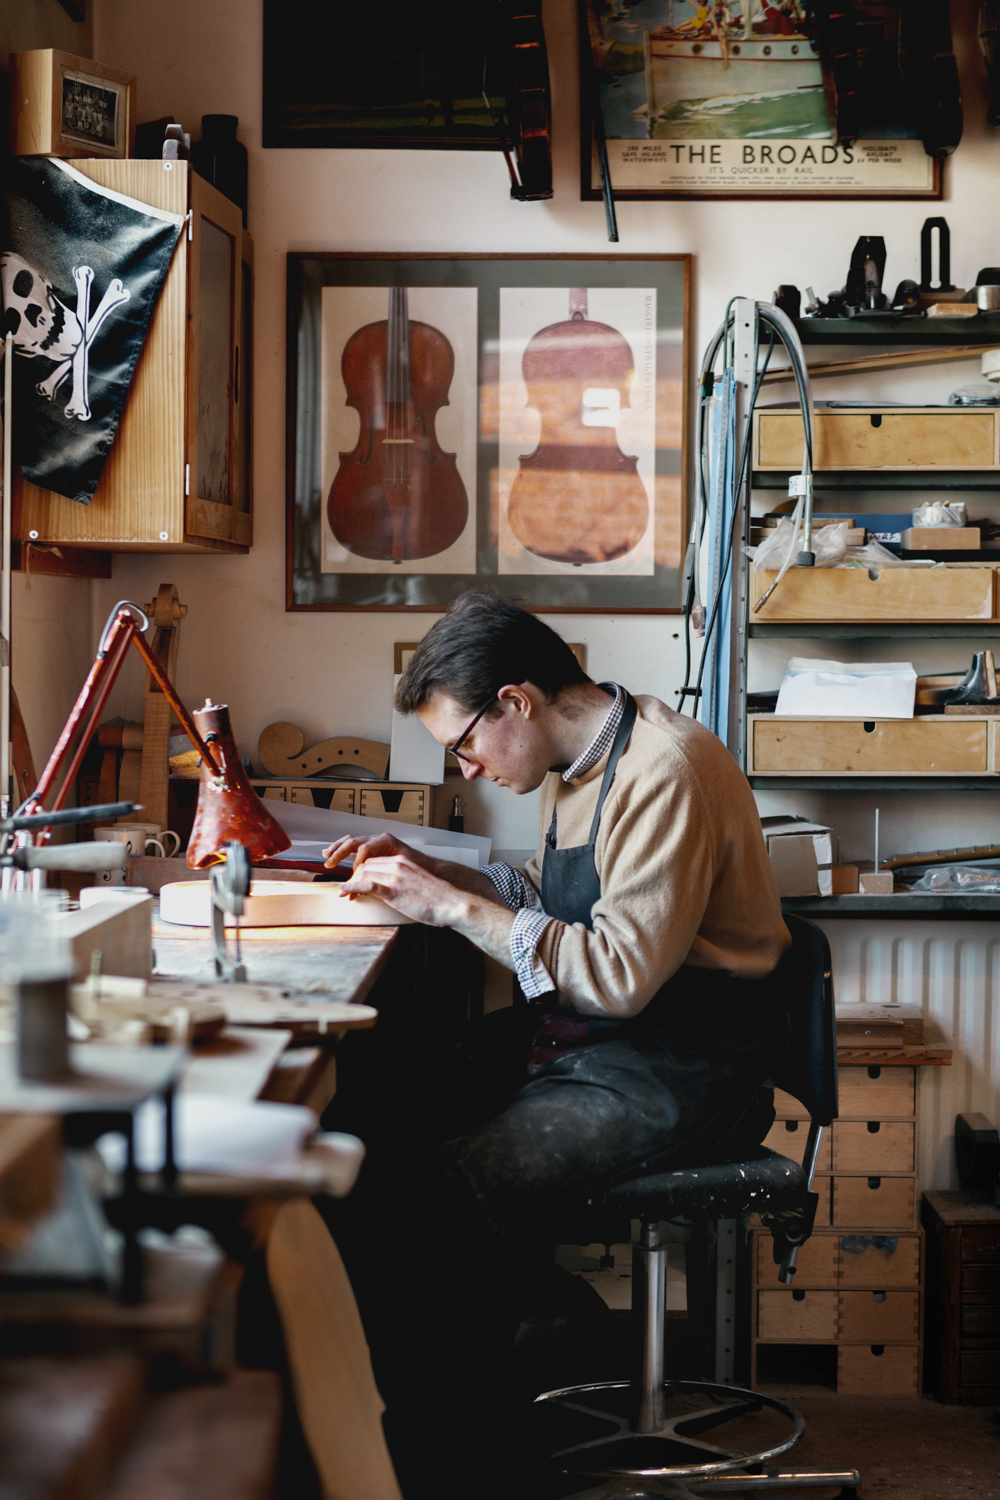 Rob working on restoring a violin